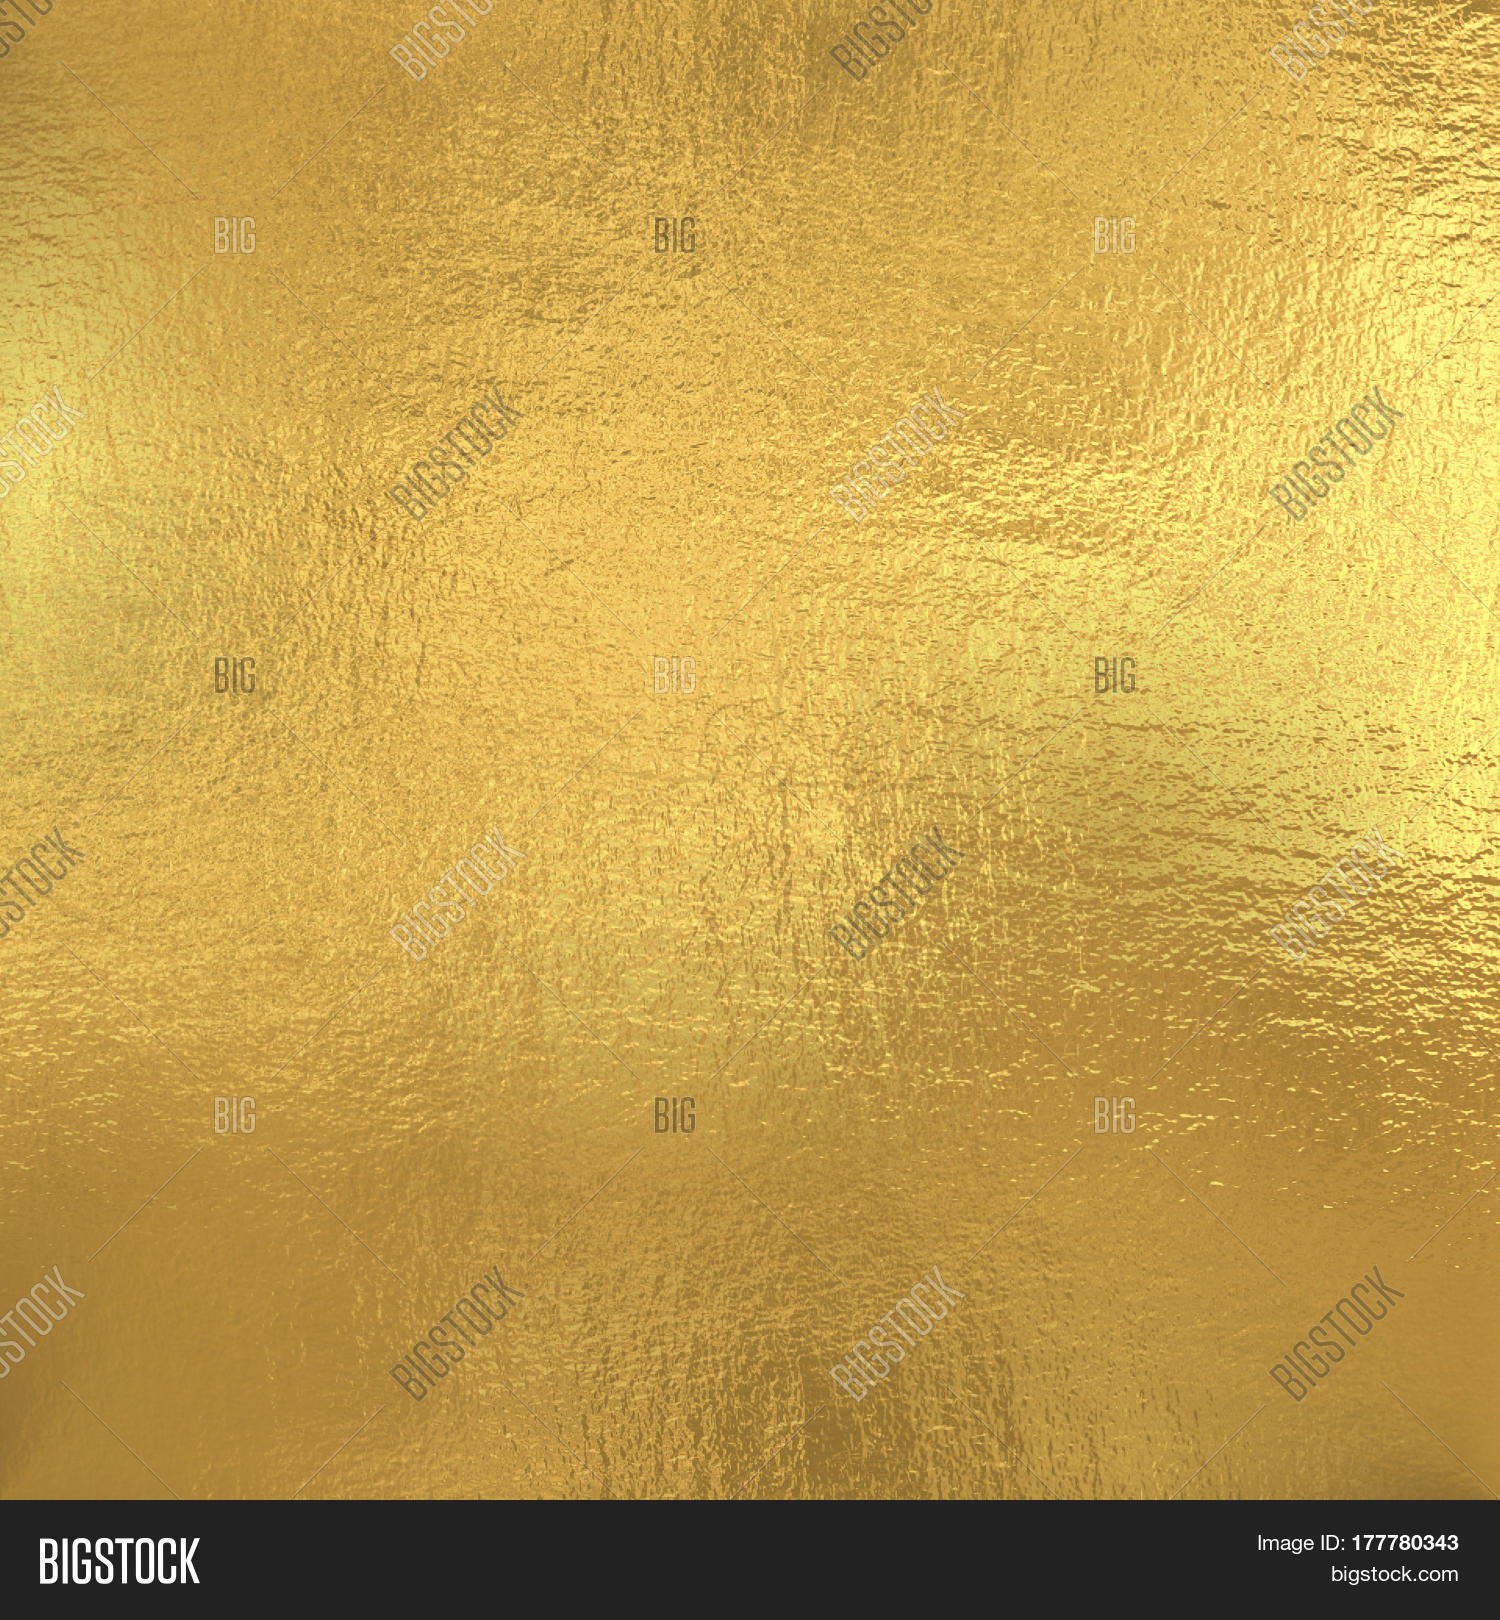 gold foil texture background yellow metal paper for design